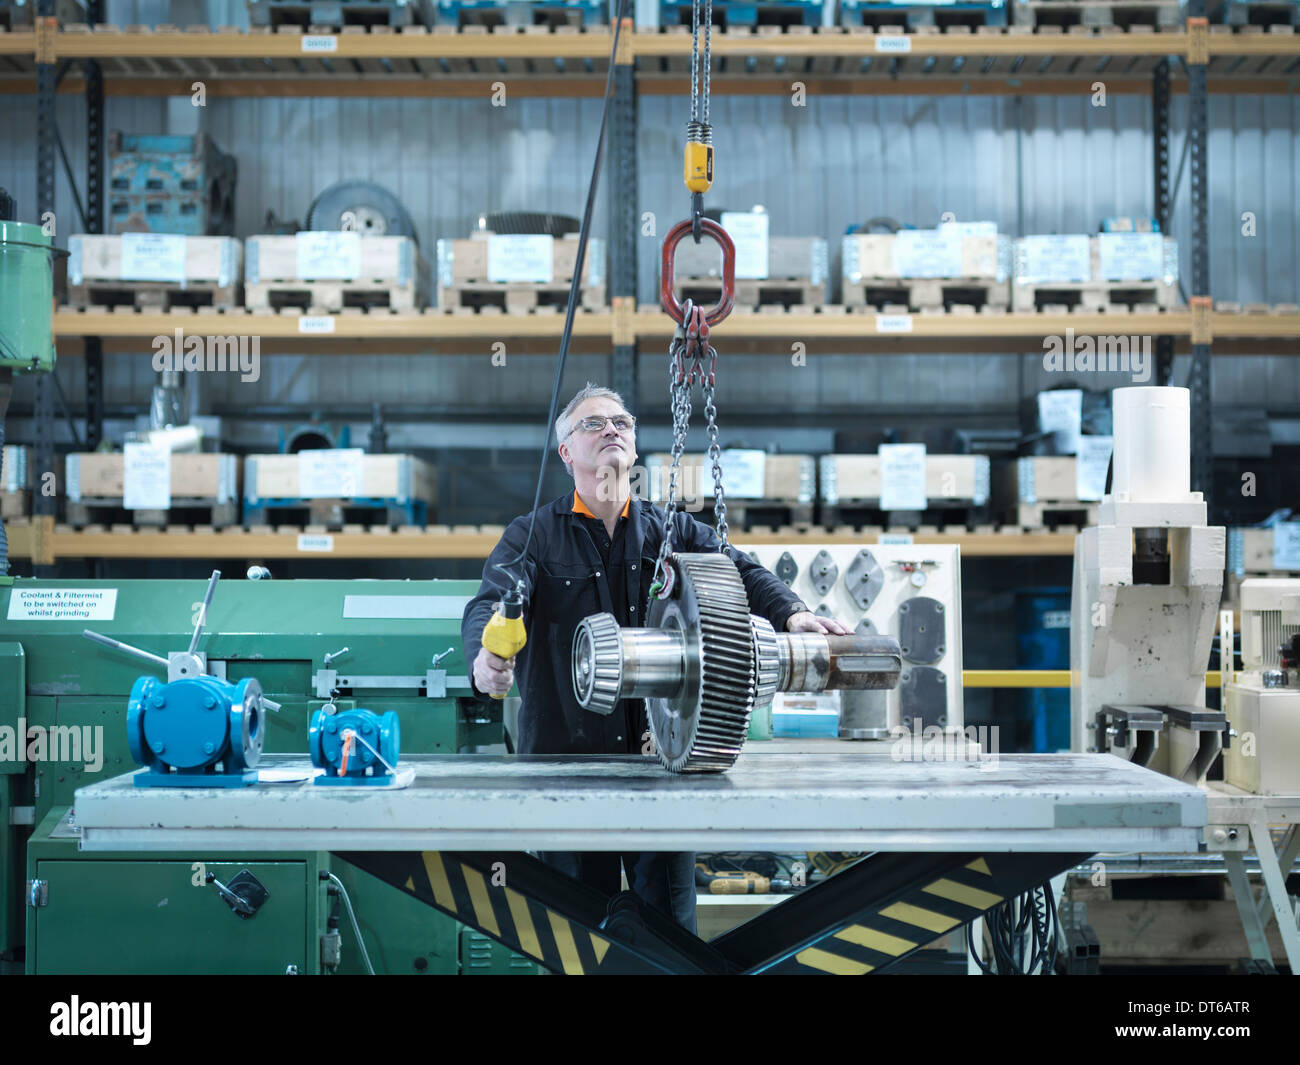 Engineer with gear wheel at work station - Stock Image